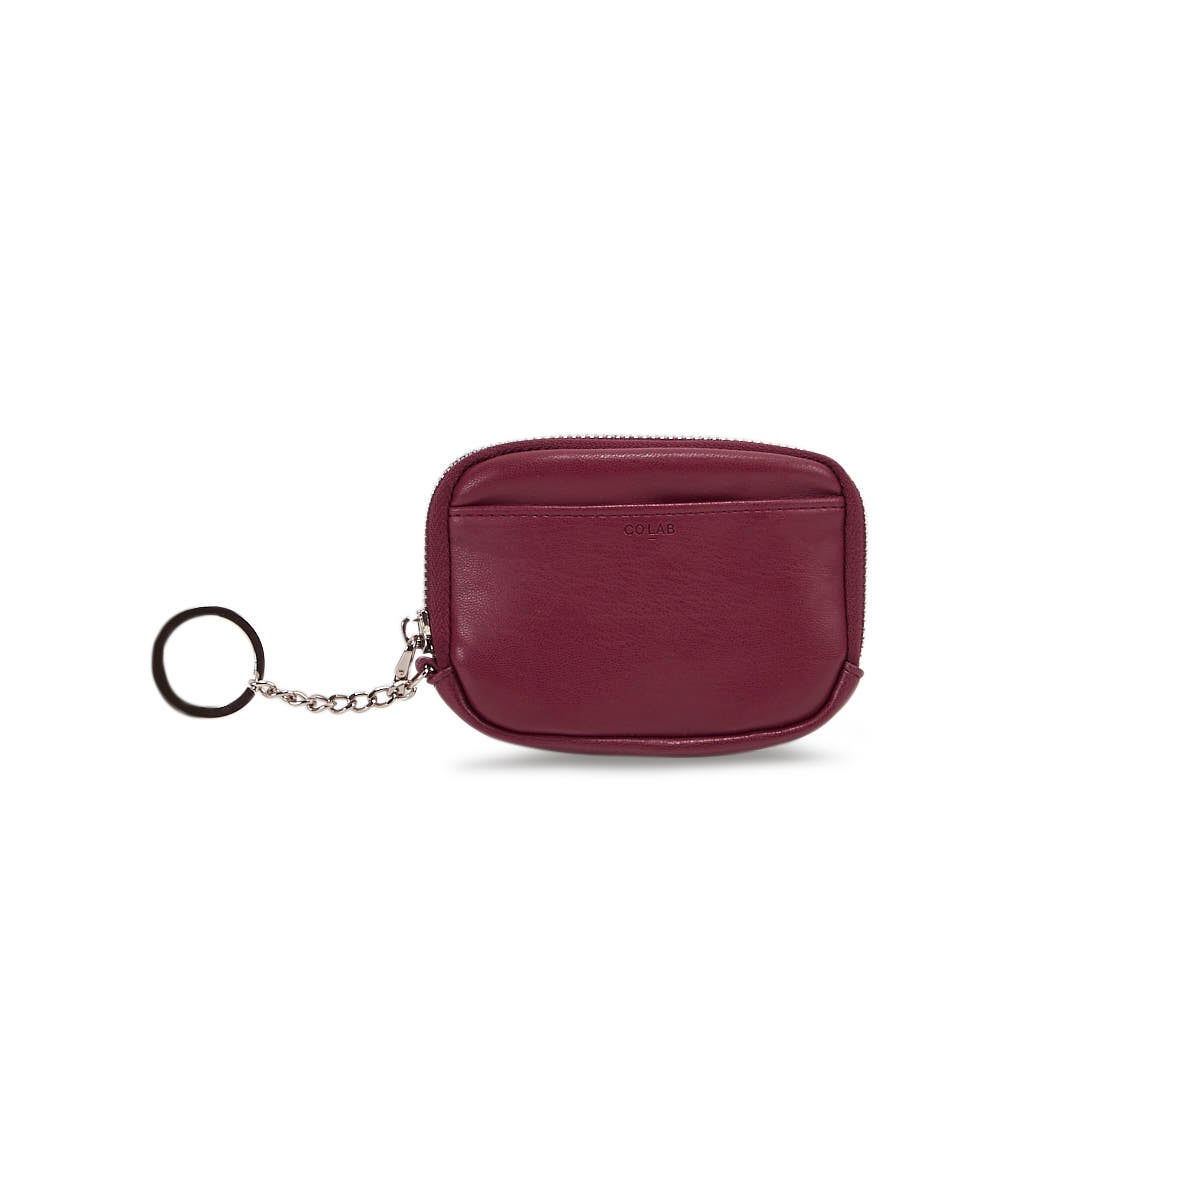 Lds berry zip up wallet